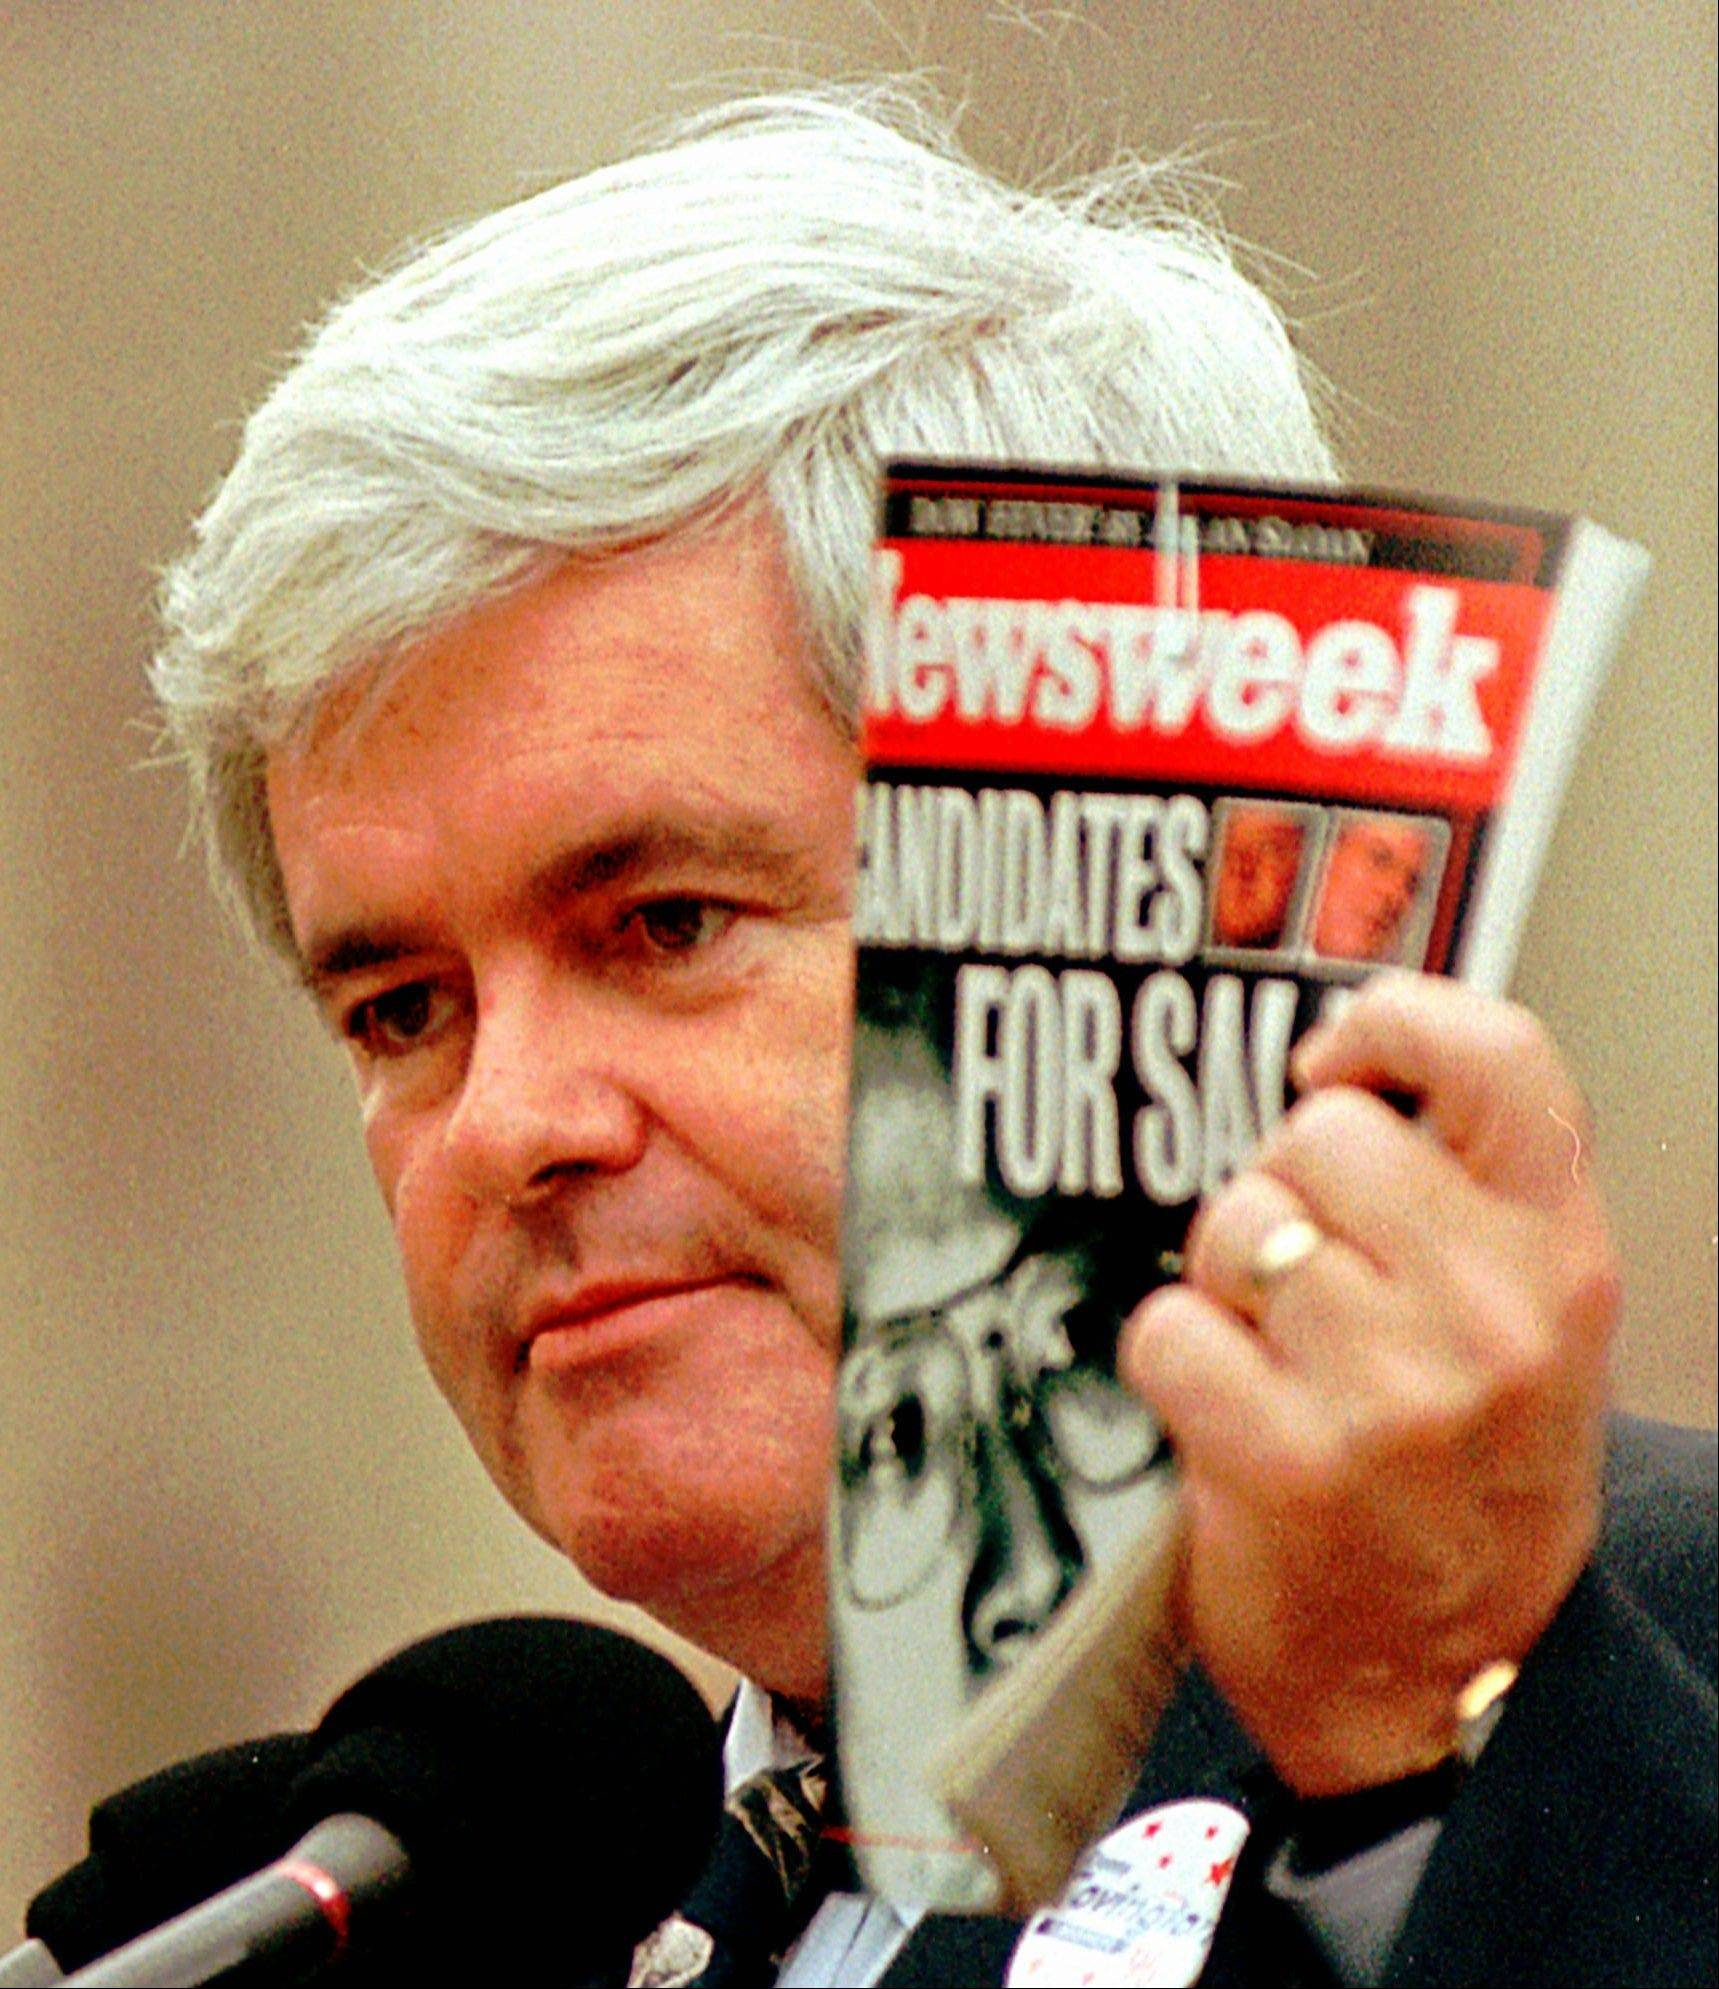 In this 1996 photo, House Speaker Newt Gingrich, R-Ga., holds a copy of Newsweek Magazine and makes comments about President Clinton and the Democratic Party in Jackson, Miss.